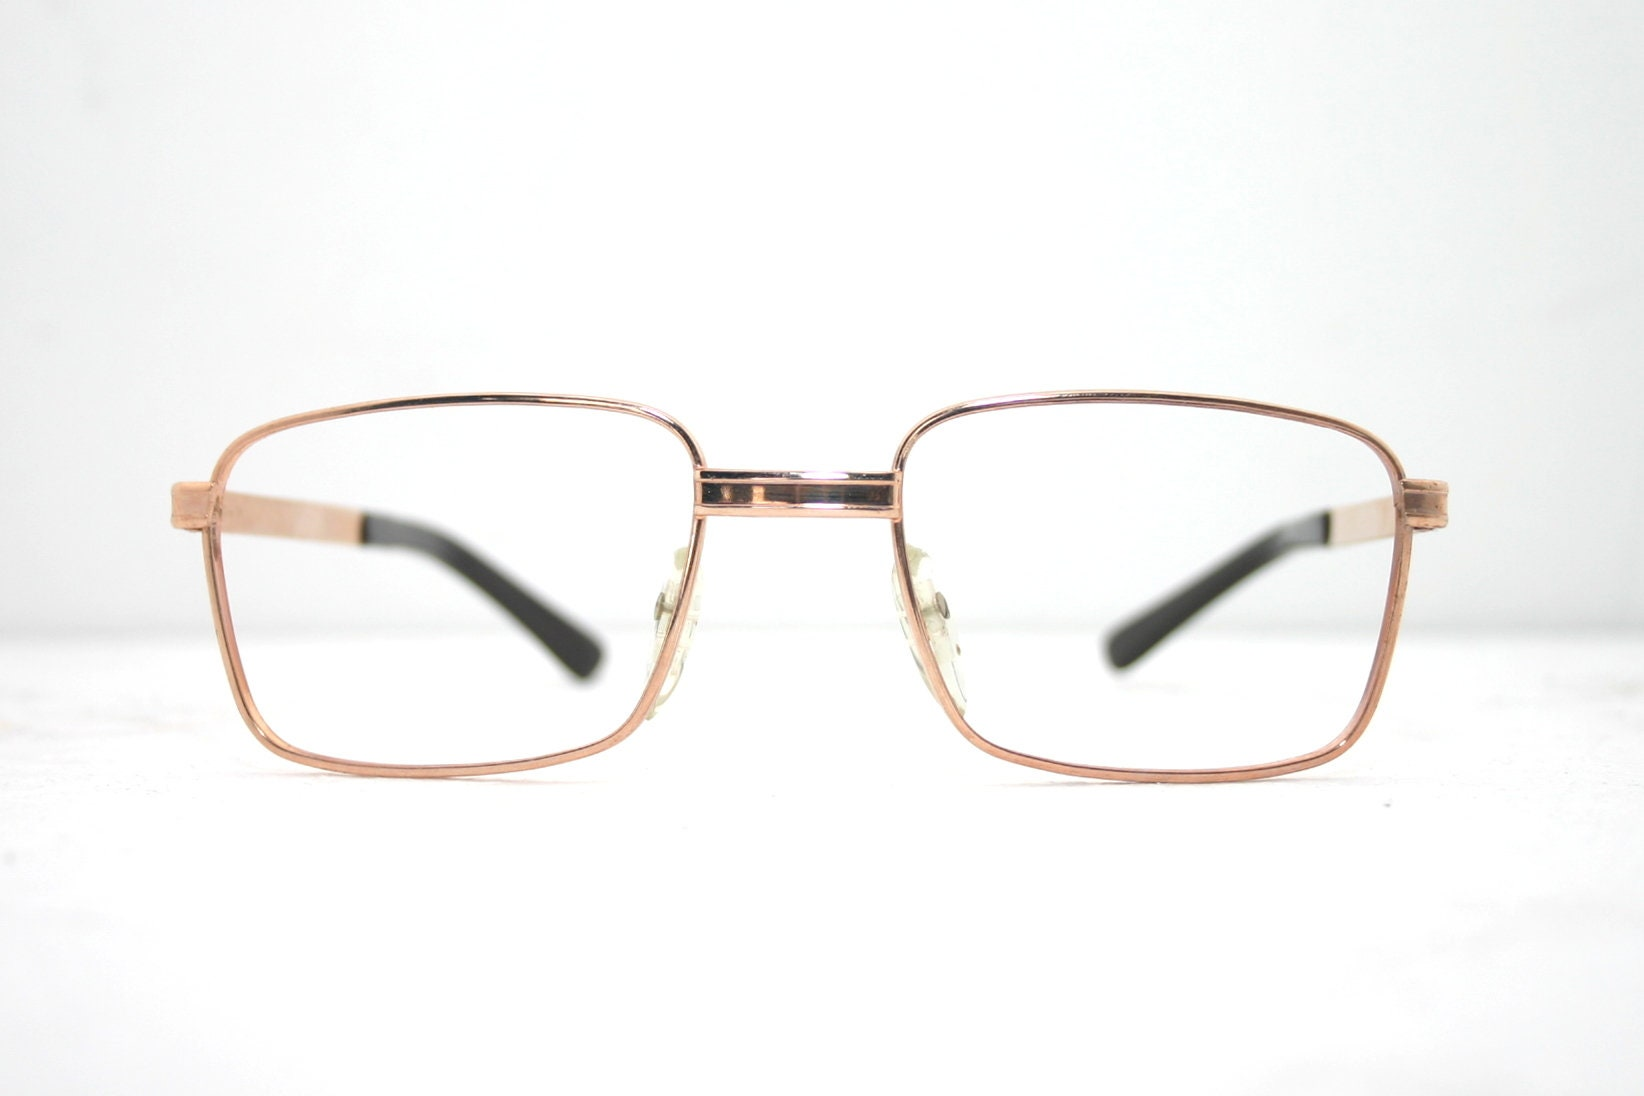 68d3f04c385 Men s Vintage Eyeglasses Classic 60 s Metallic Eye